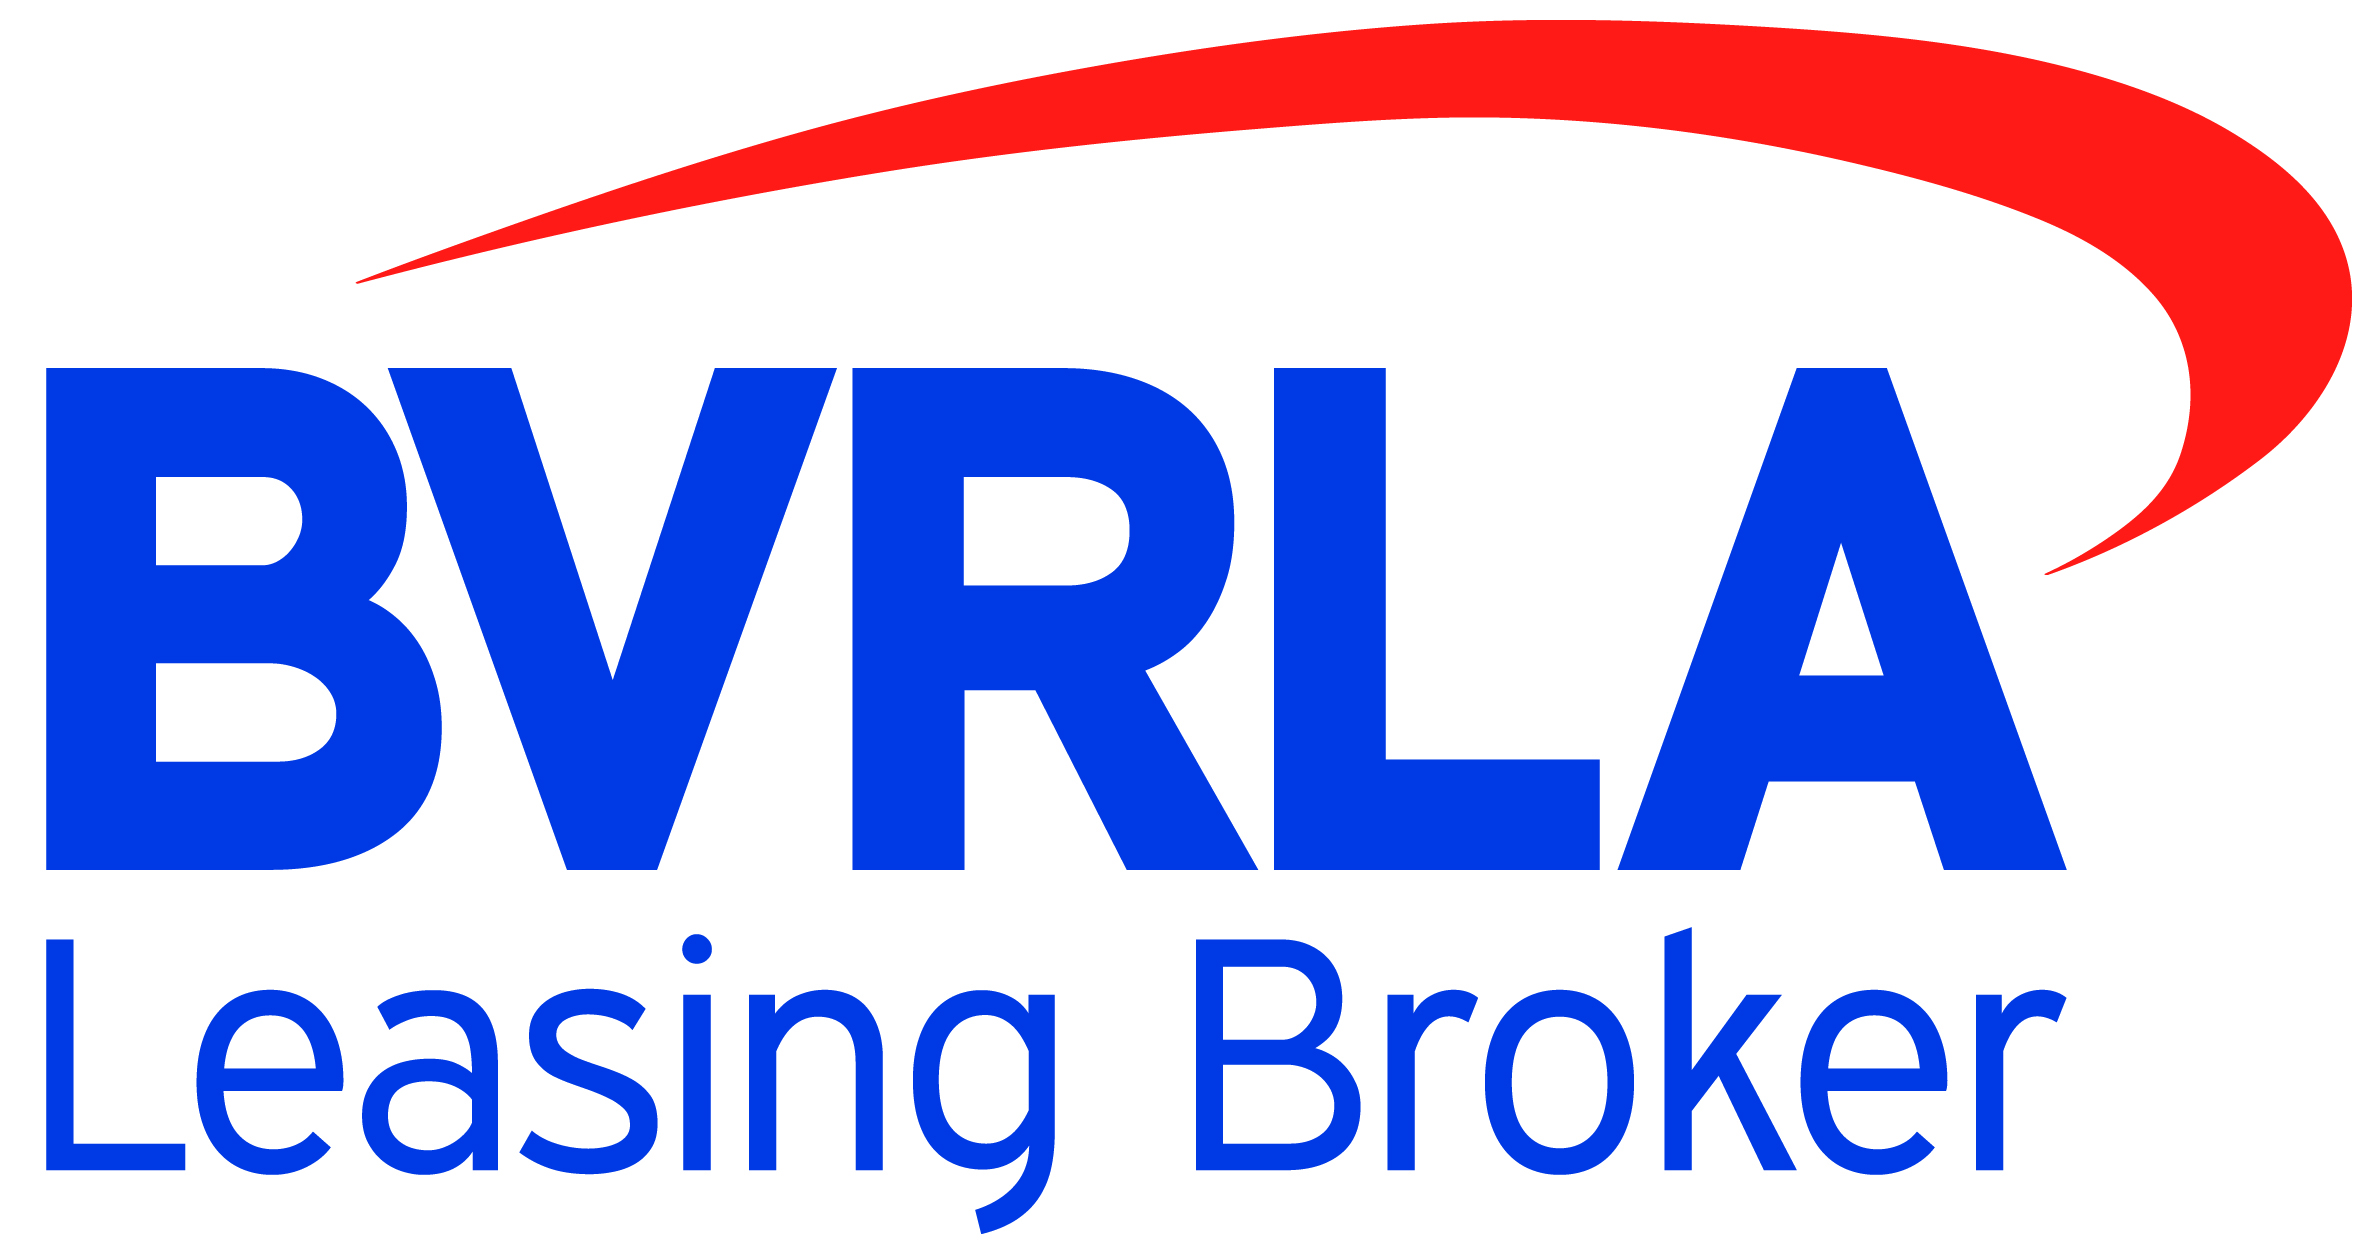 British Vehicle Rental & Leasing Association